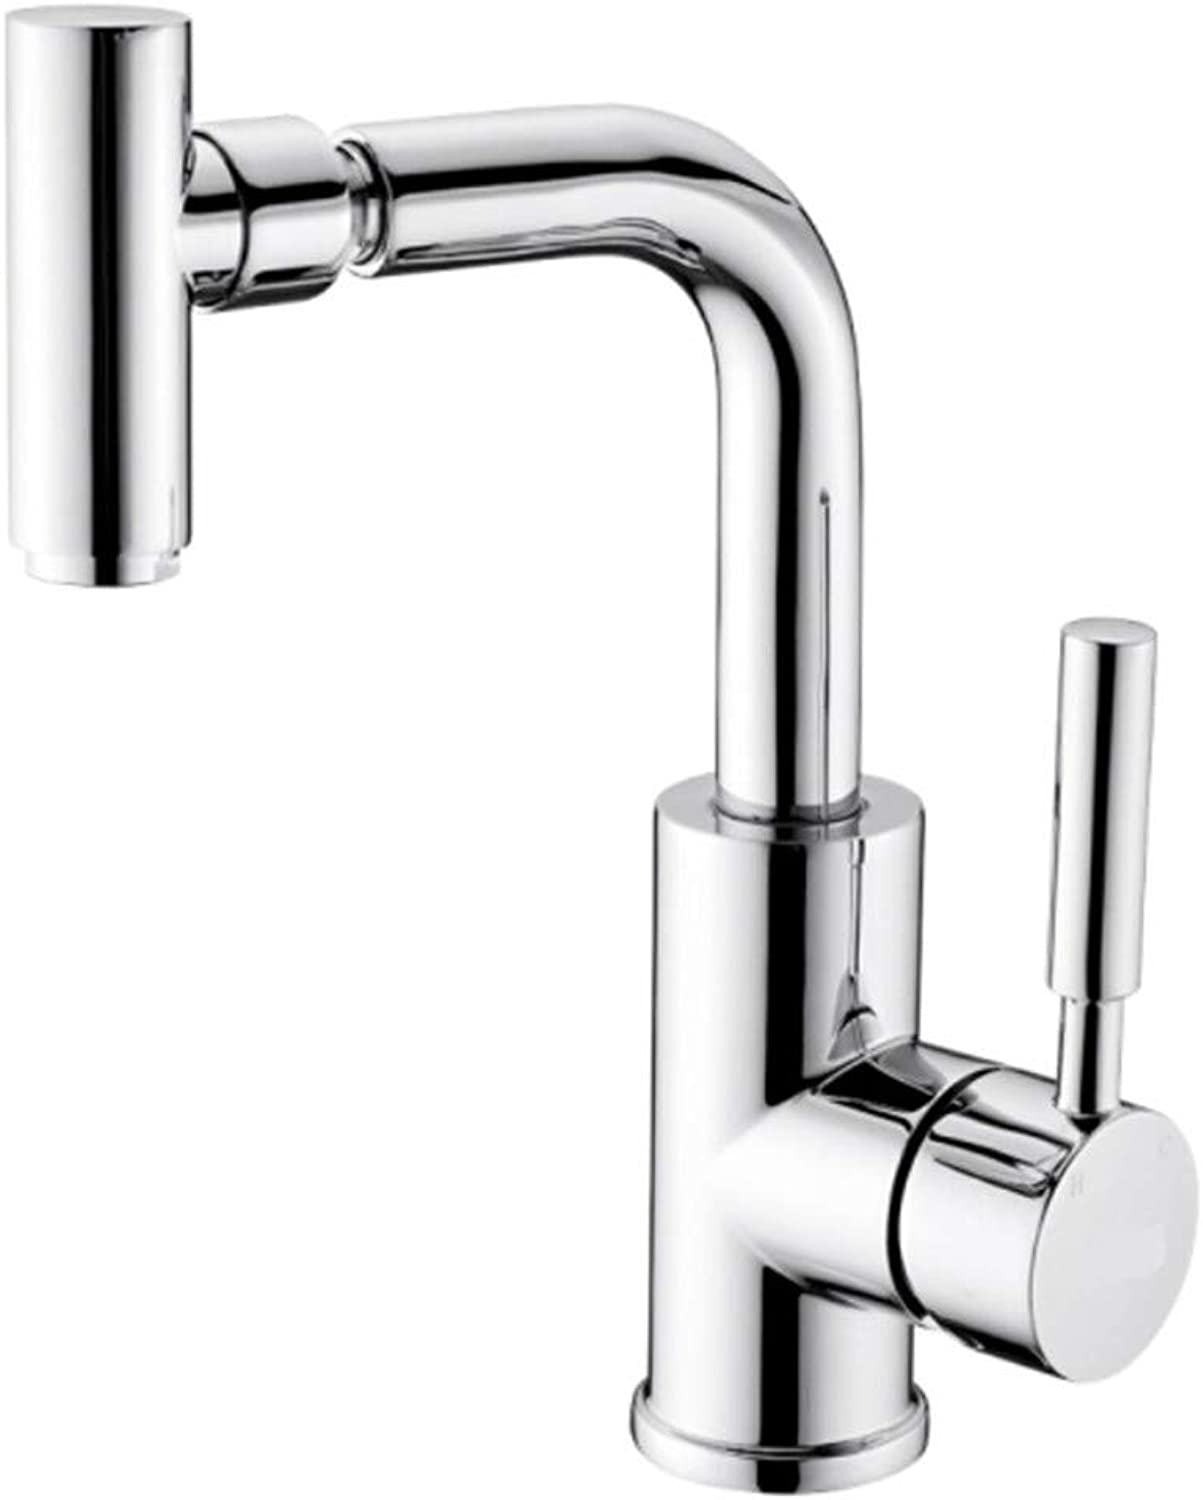 Pull Out The Pull Down Stainless Steelbathroom Bath Basin Faucet All Copper Inner Core Hot and Cold Universal Single Hole Faucet